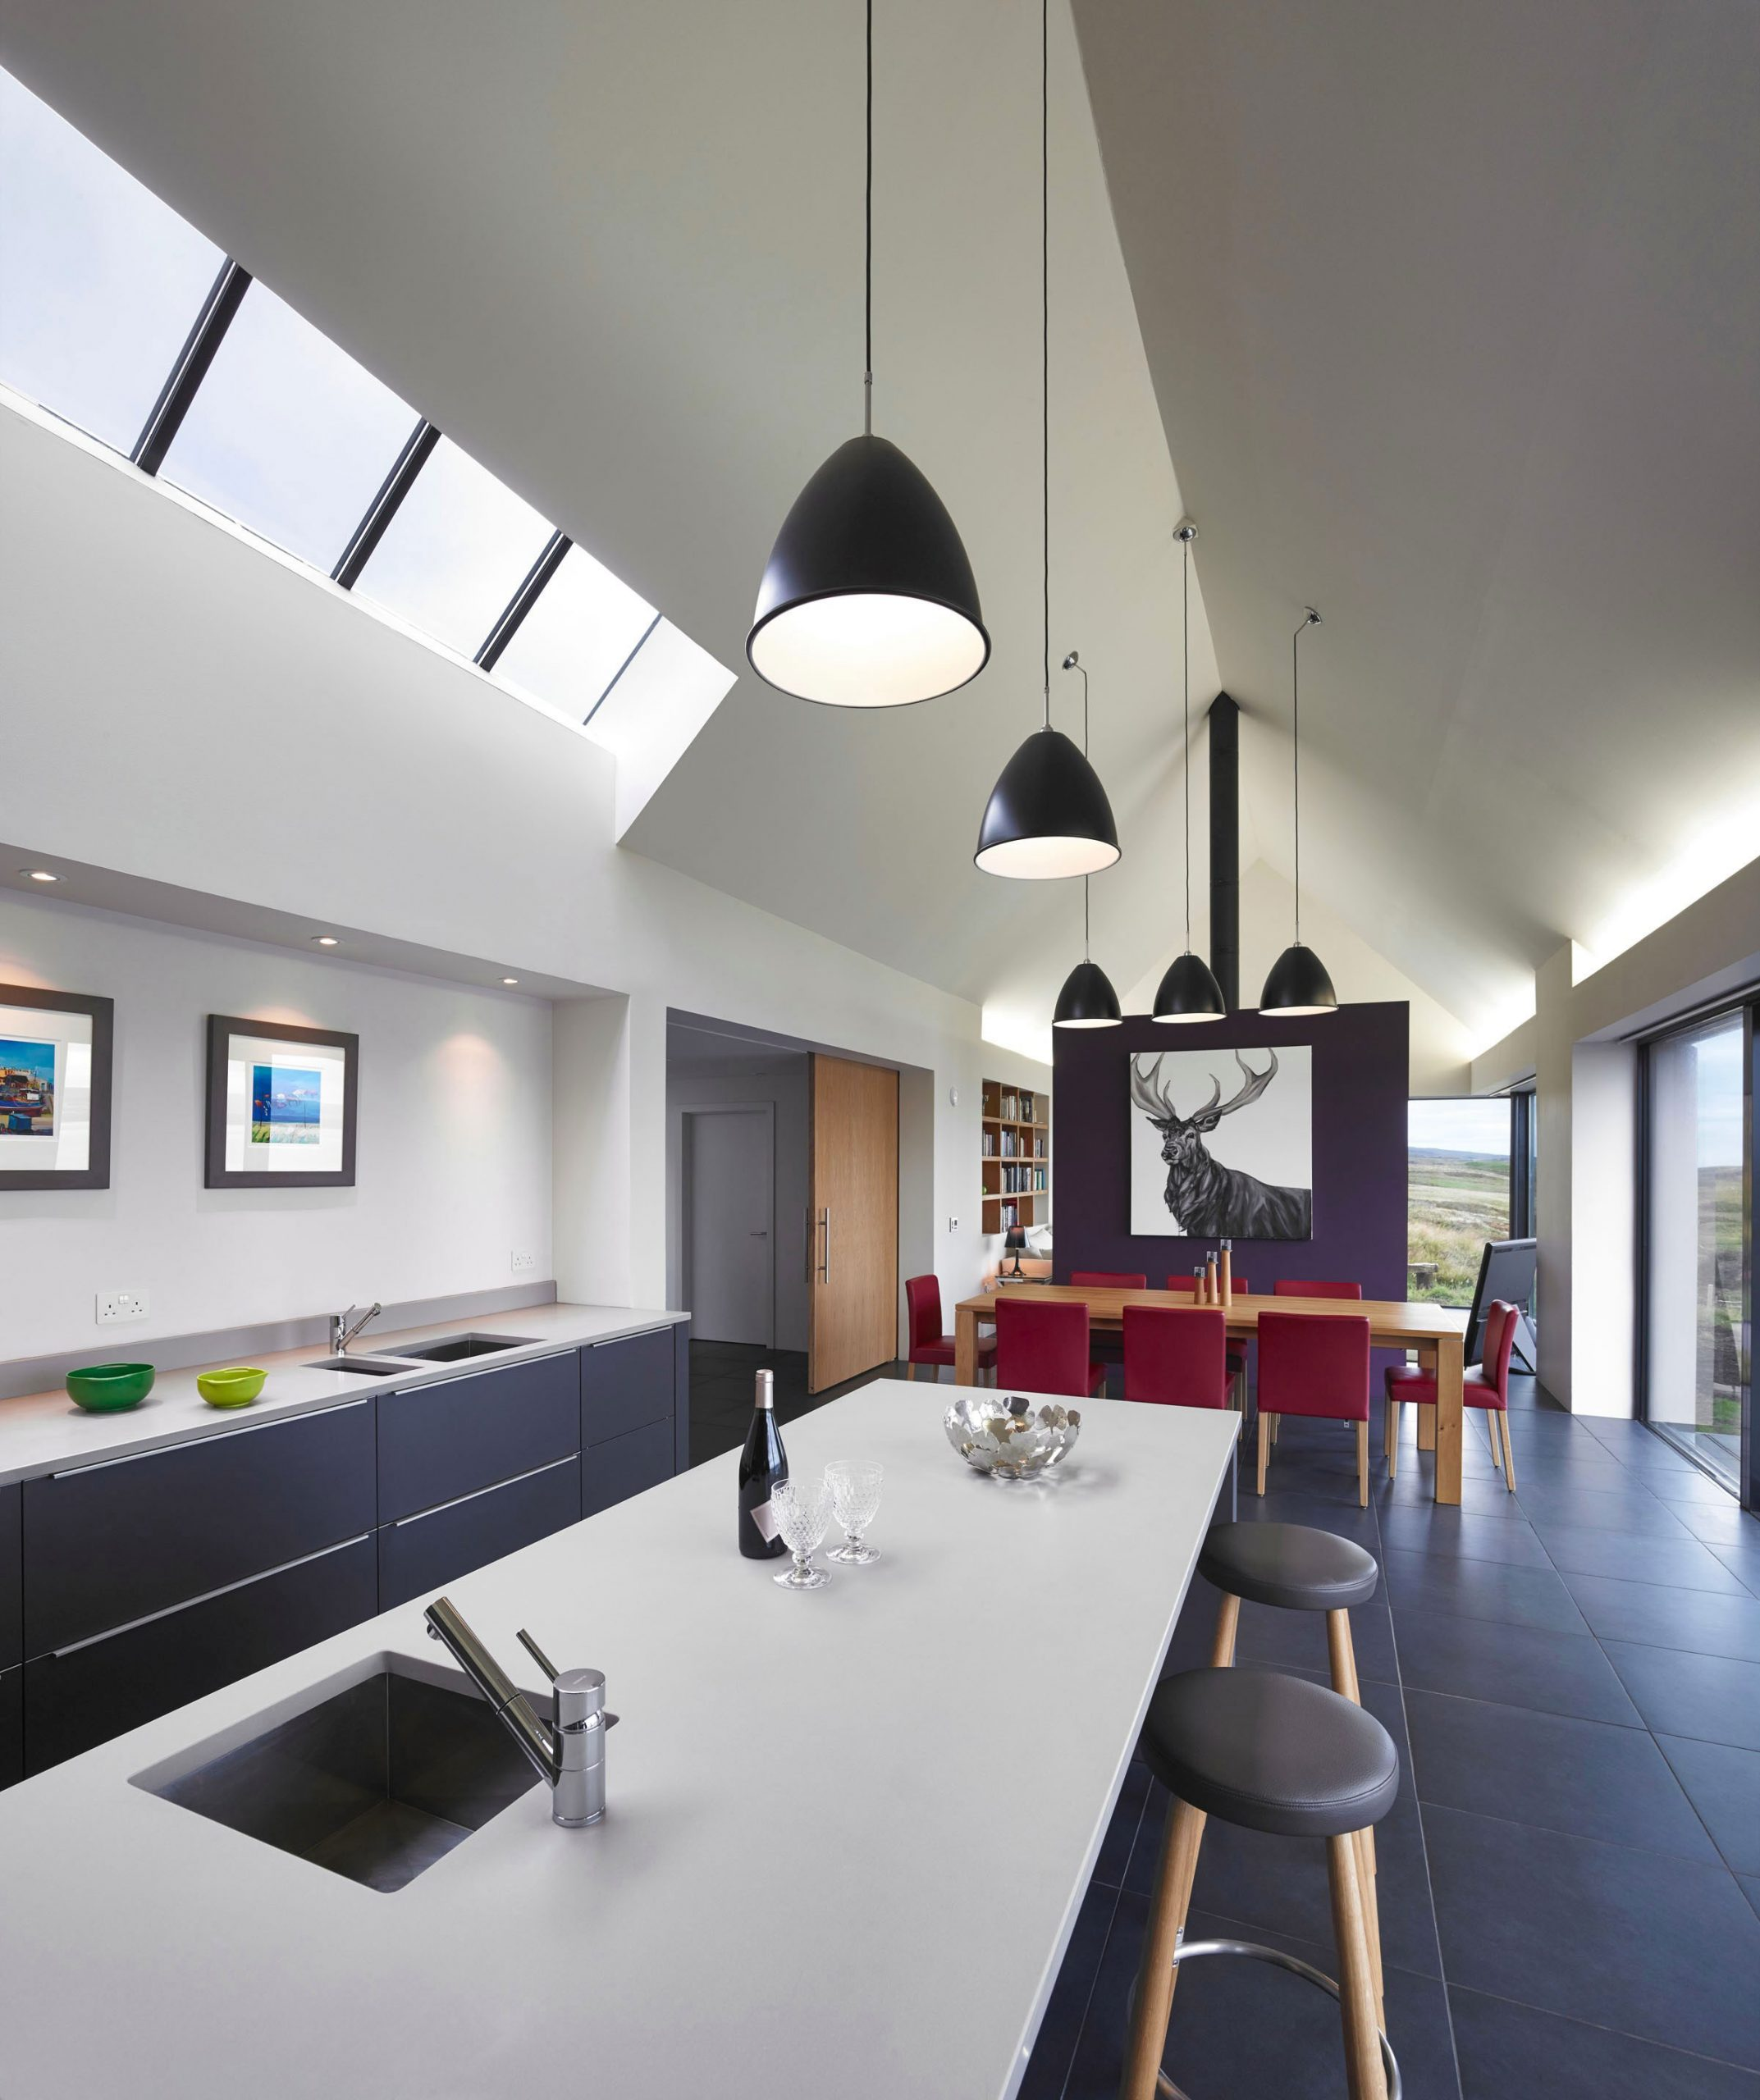 House-in-Colbost-kitchen-and-dining